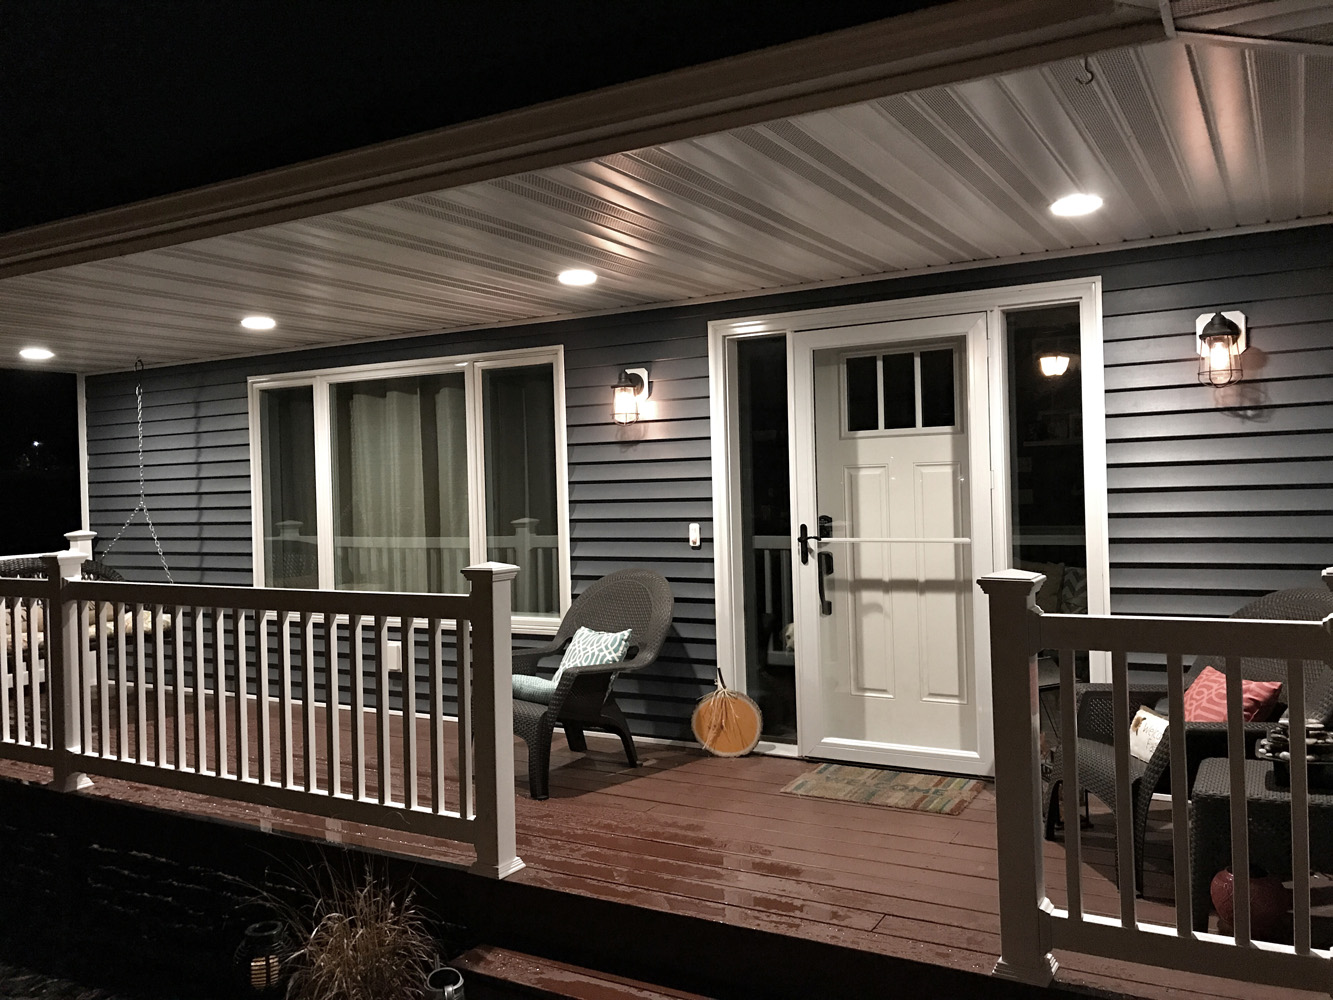 Exterior Lighting Projects